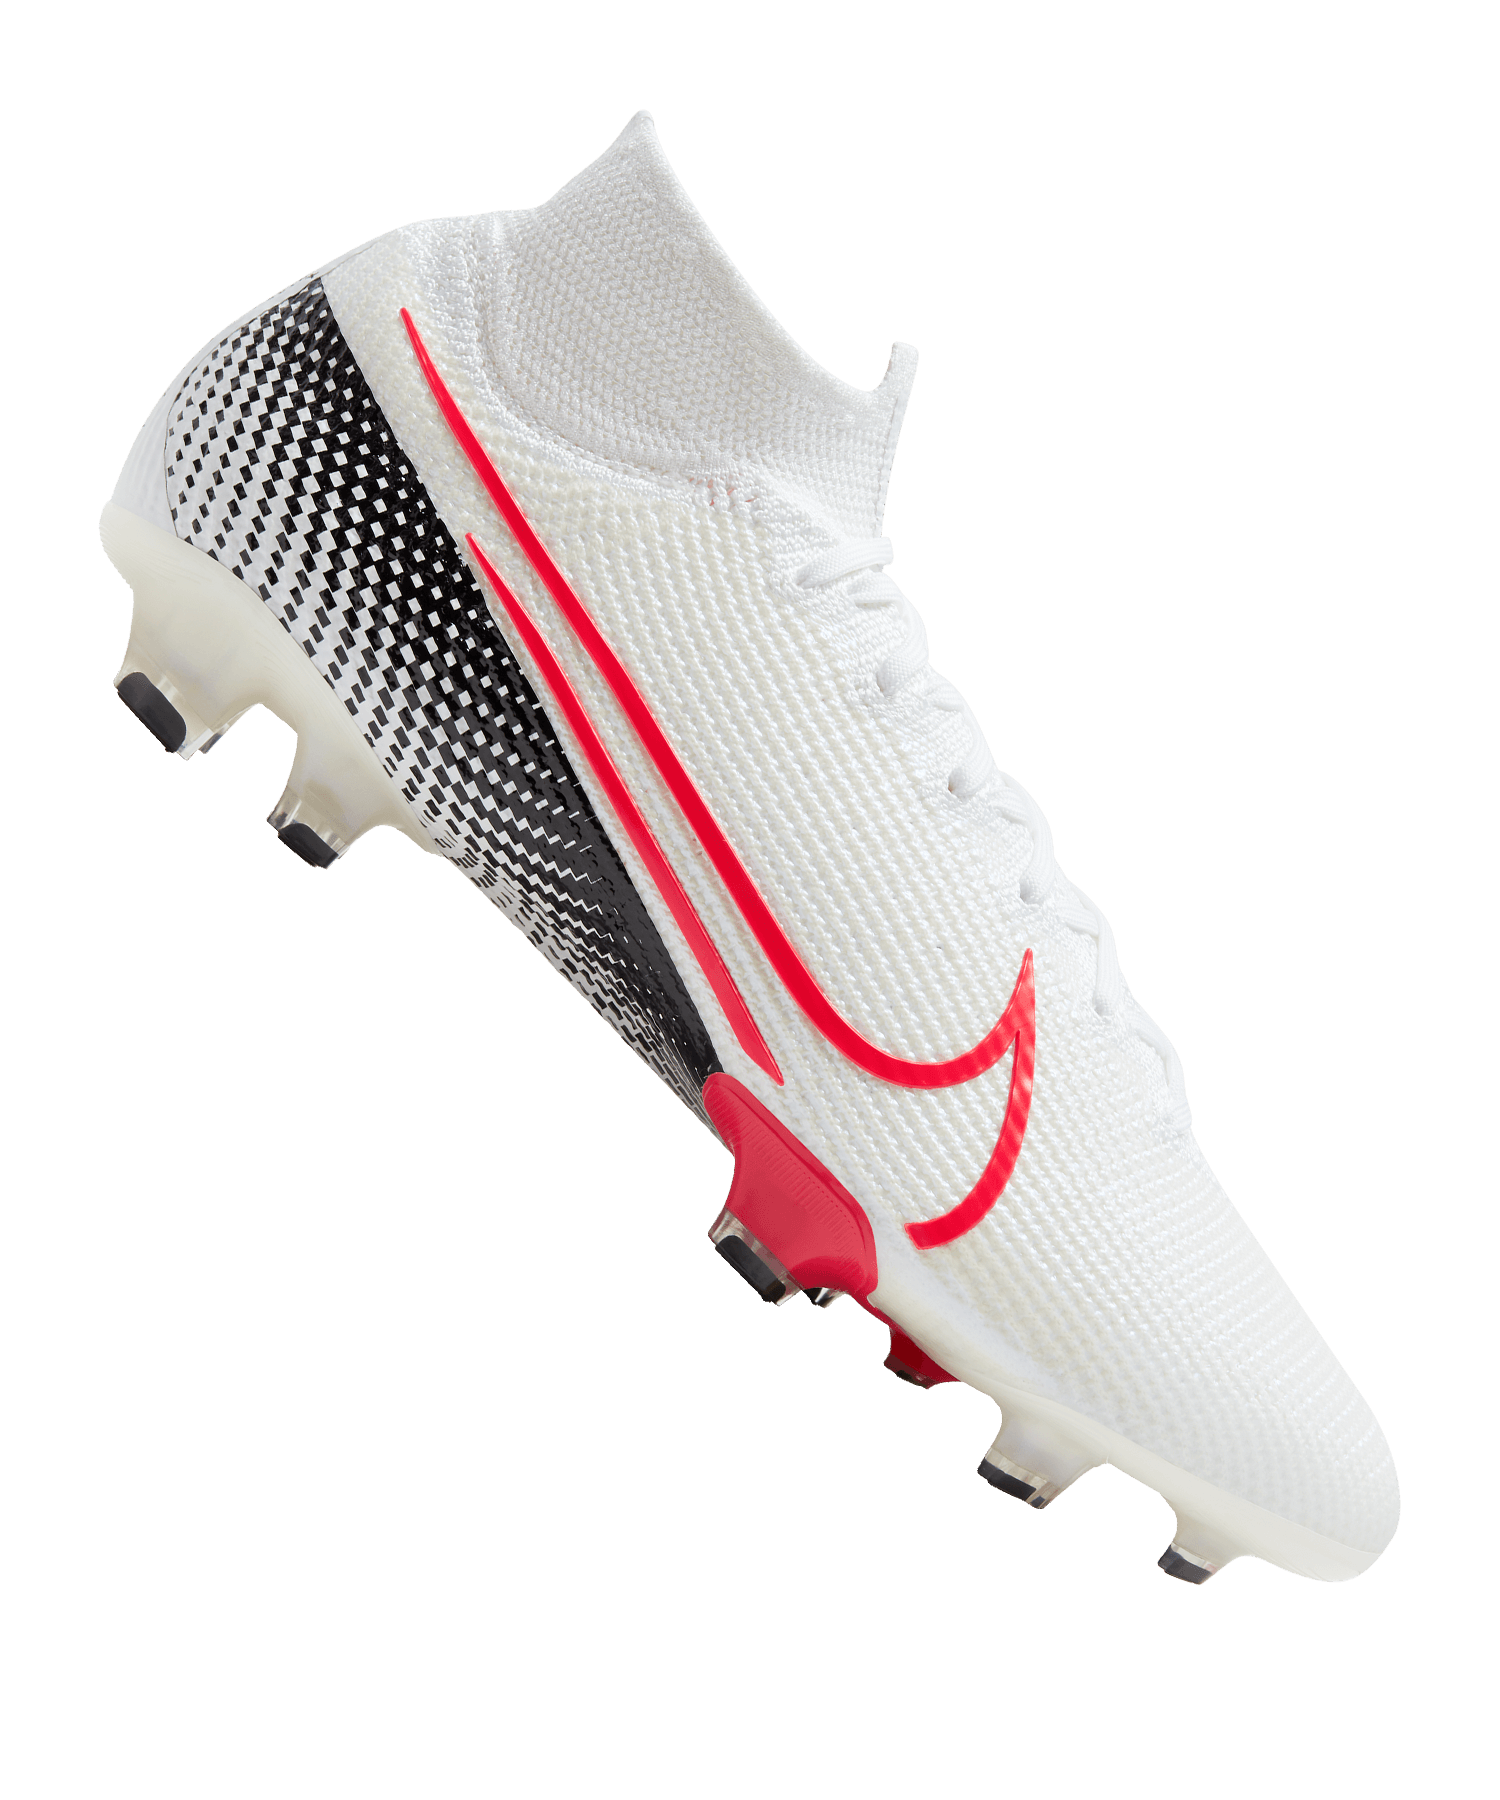 NIKE Mercurial Superfly VII Elite FG